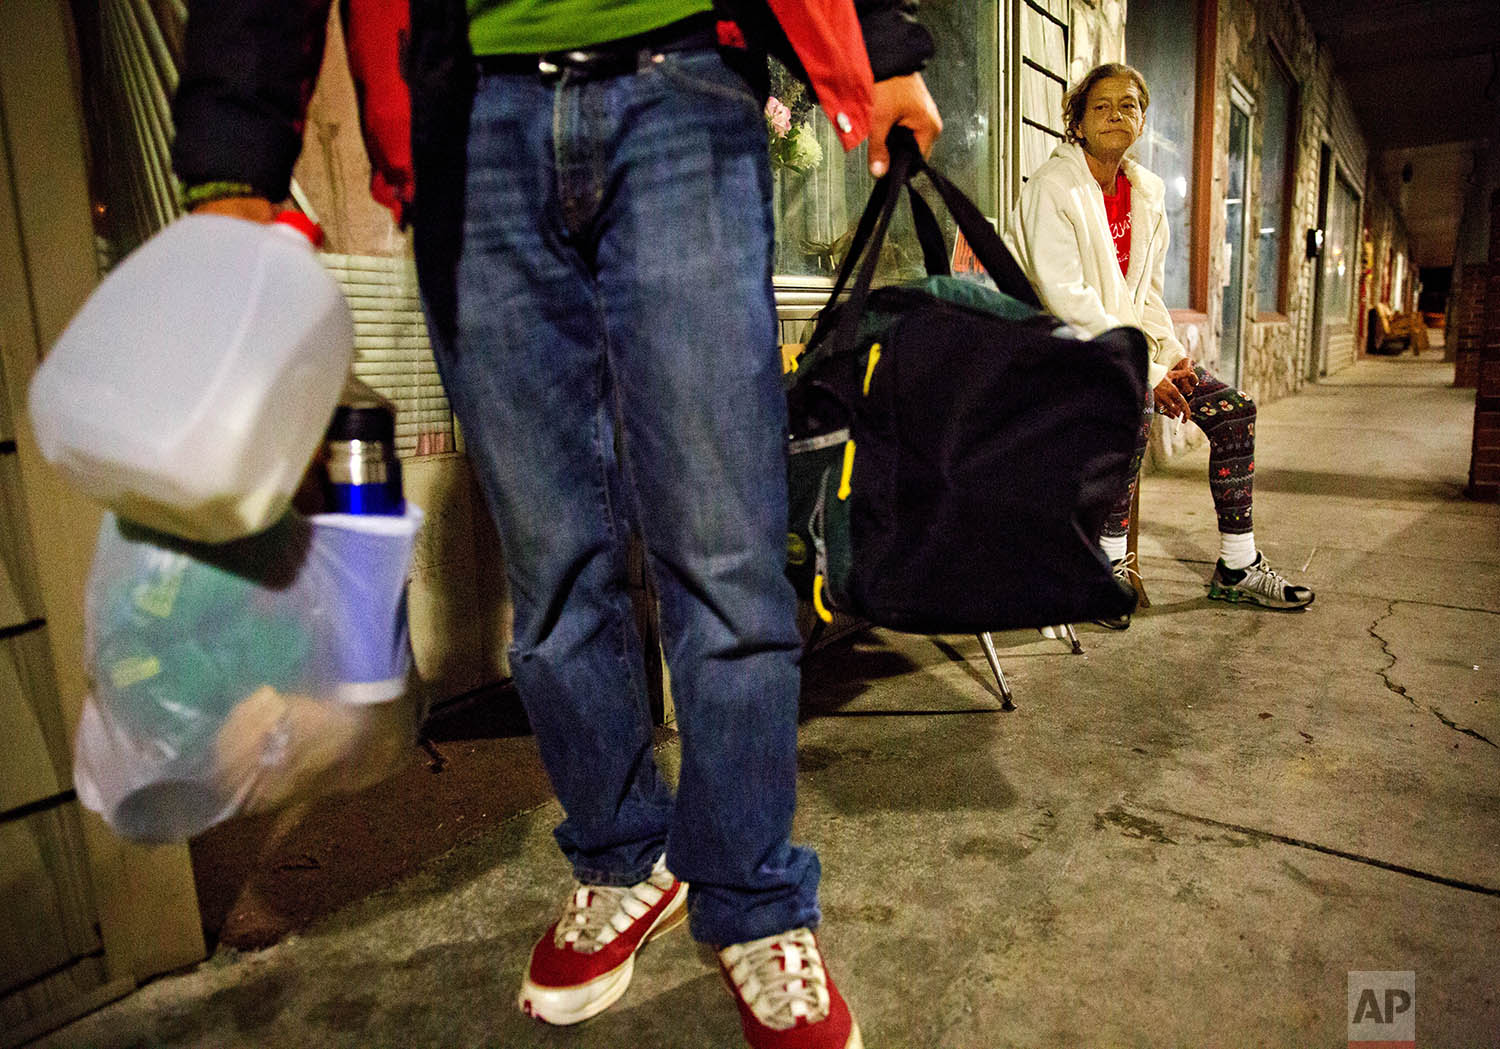 Tammy Perry sits outside the apartment she is staying in after getting released from jail, as a homeless friend, who was kicked out by the tenant, walks away, in LaFollette, Tenn., Monday, April 23, 2018. (AP Photo/David Goldman)